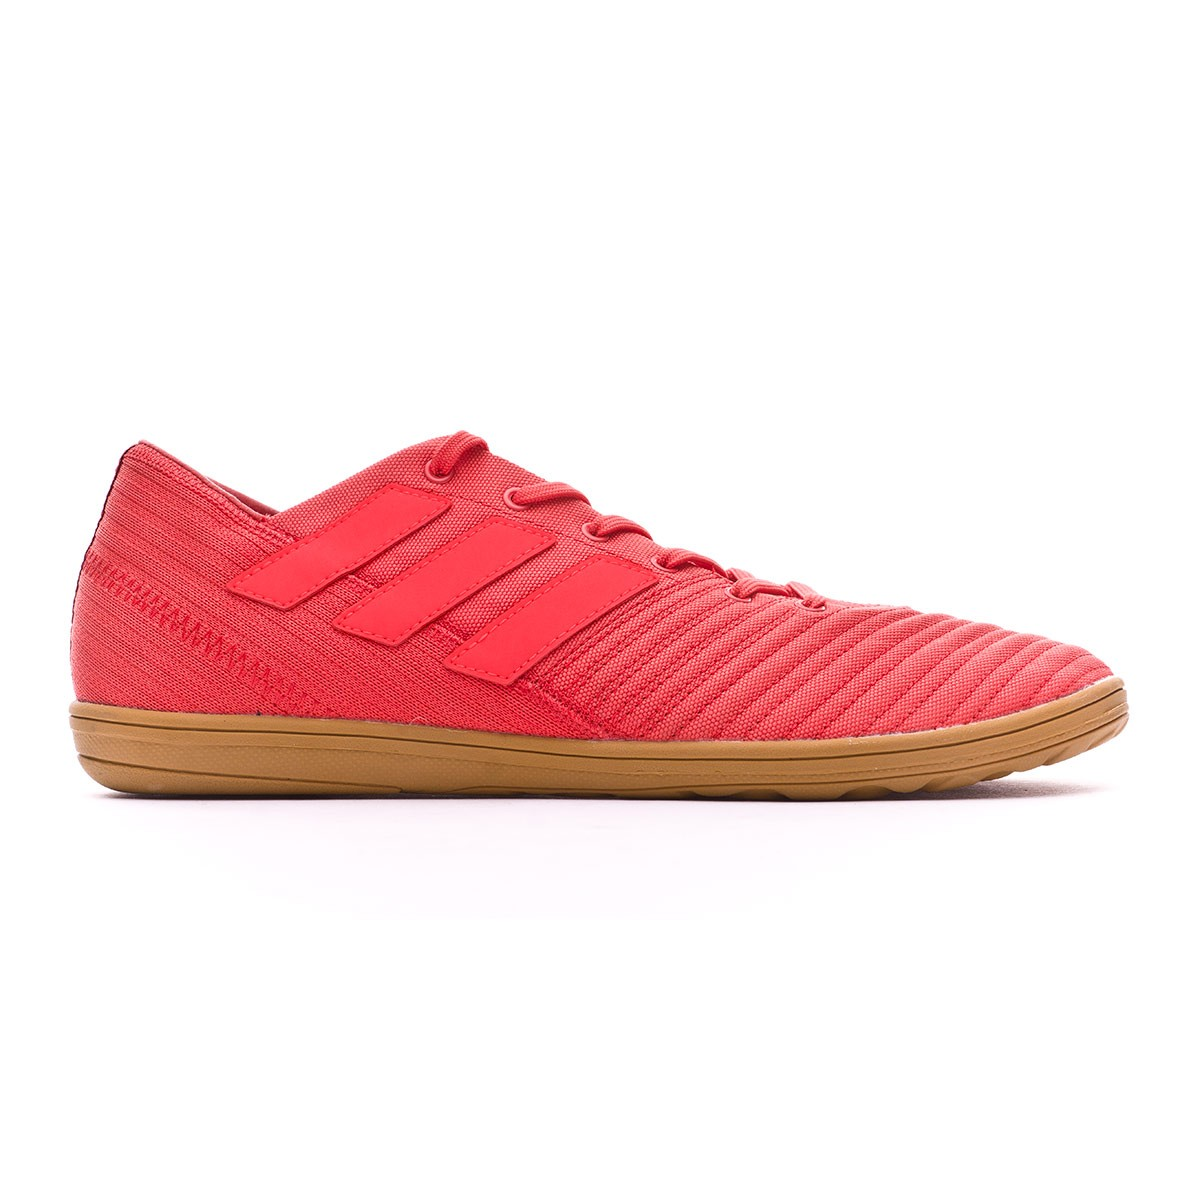 check out 35d2d a101f Futsal Boot adidas Nemeziz Tango 17.4 IN Sala Real coral-Red zest -  Football store Fútbol Emotion